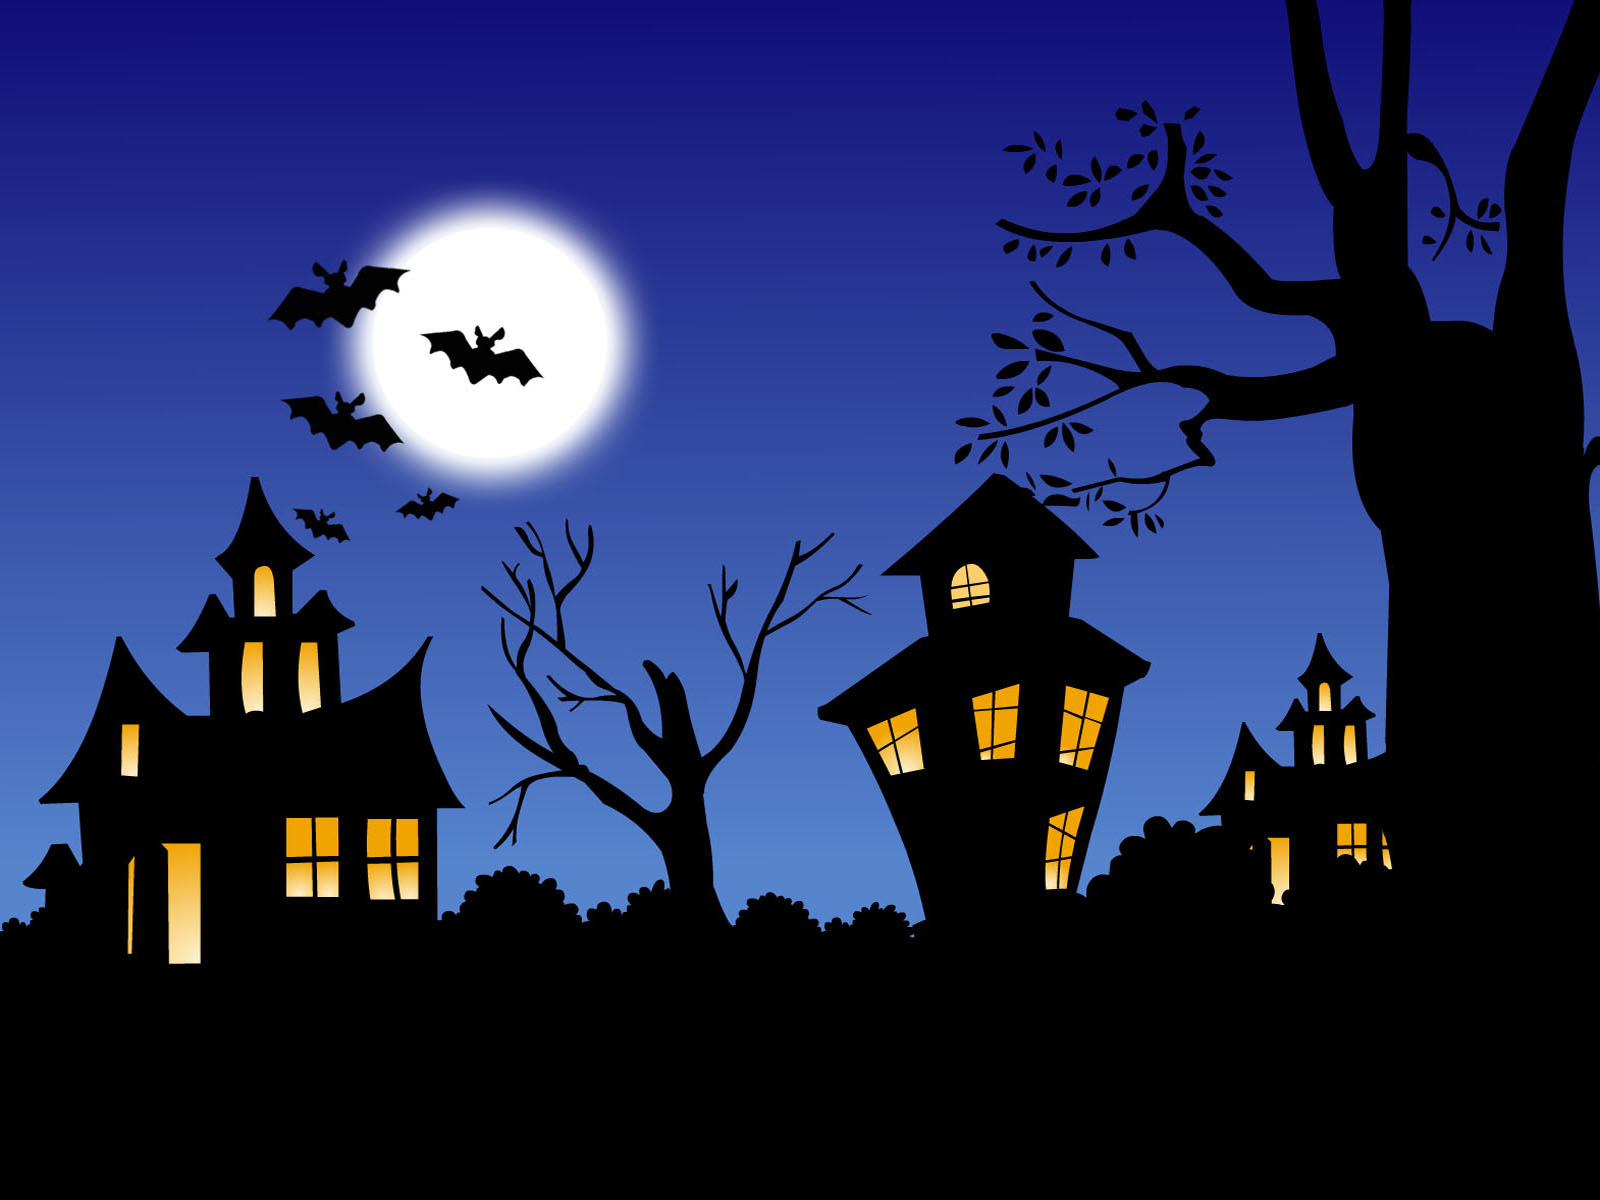 Cave clipart creepy. Halloween haunted house images